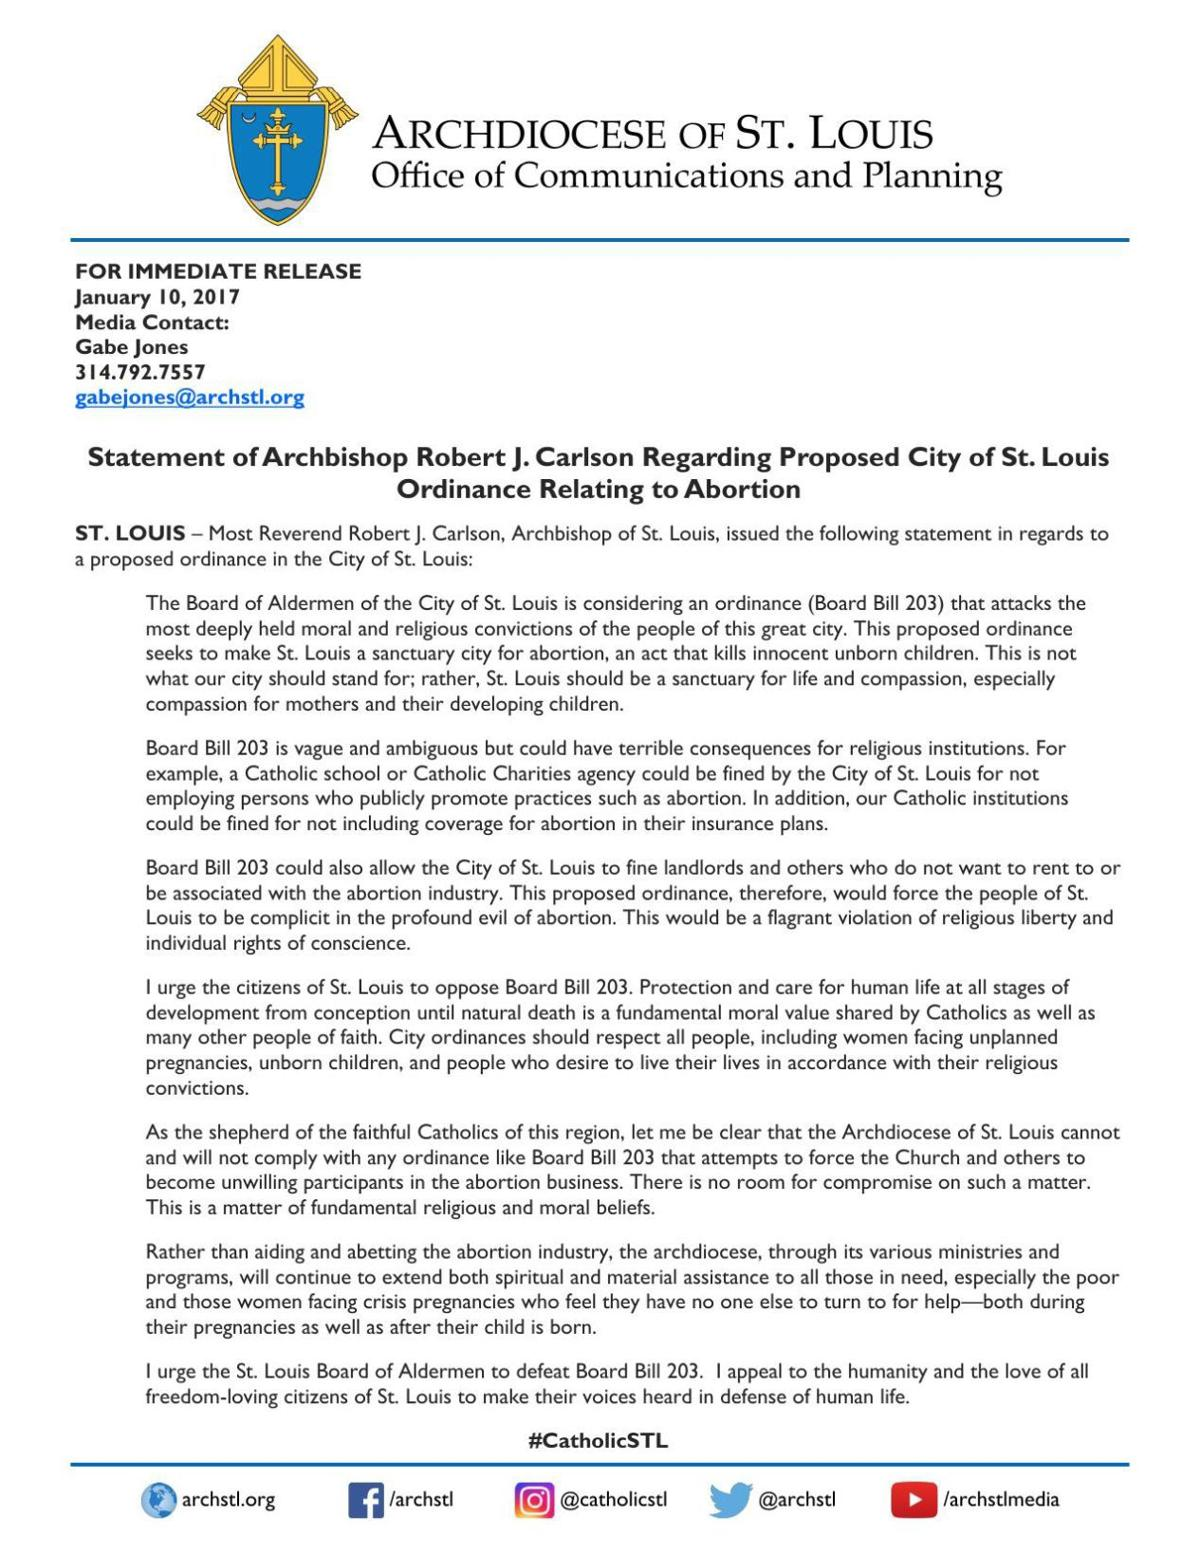 Archbishop Carlson opposes aldermanic bill related to